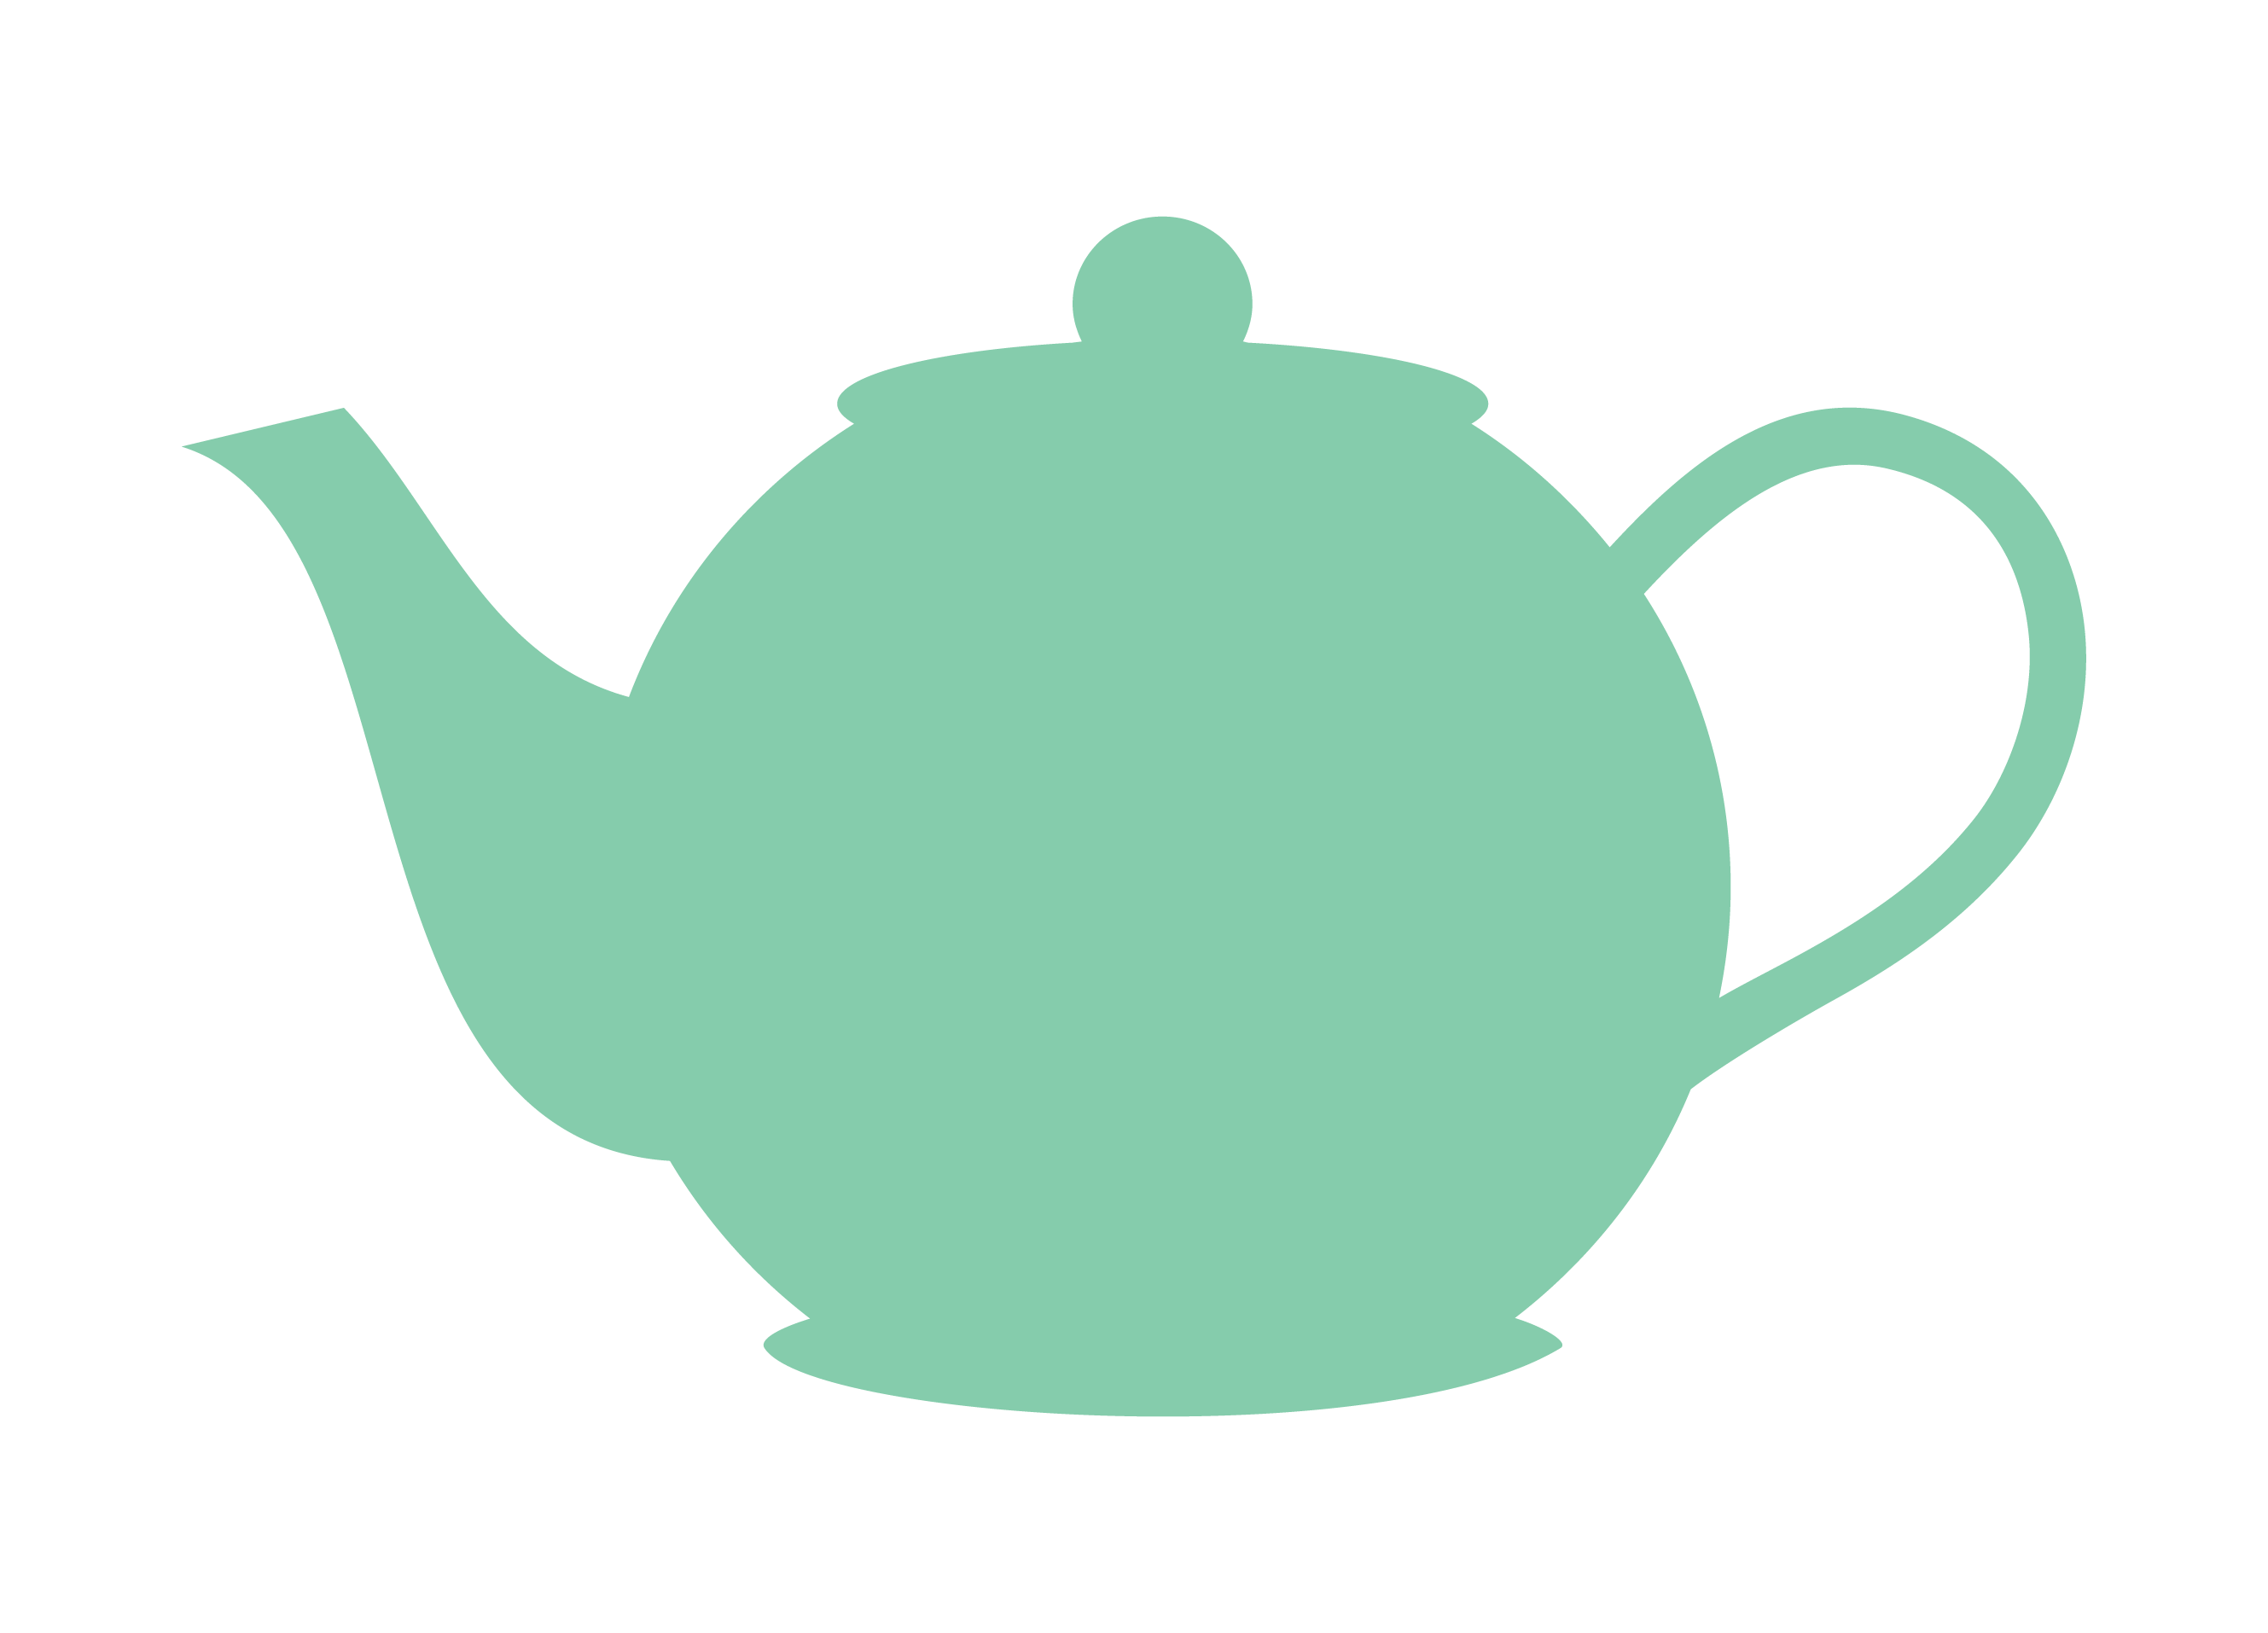 tea pot | teapot-clipart-cc-kitchen-utensils-clip-art-teapot.png ...